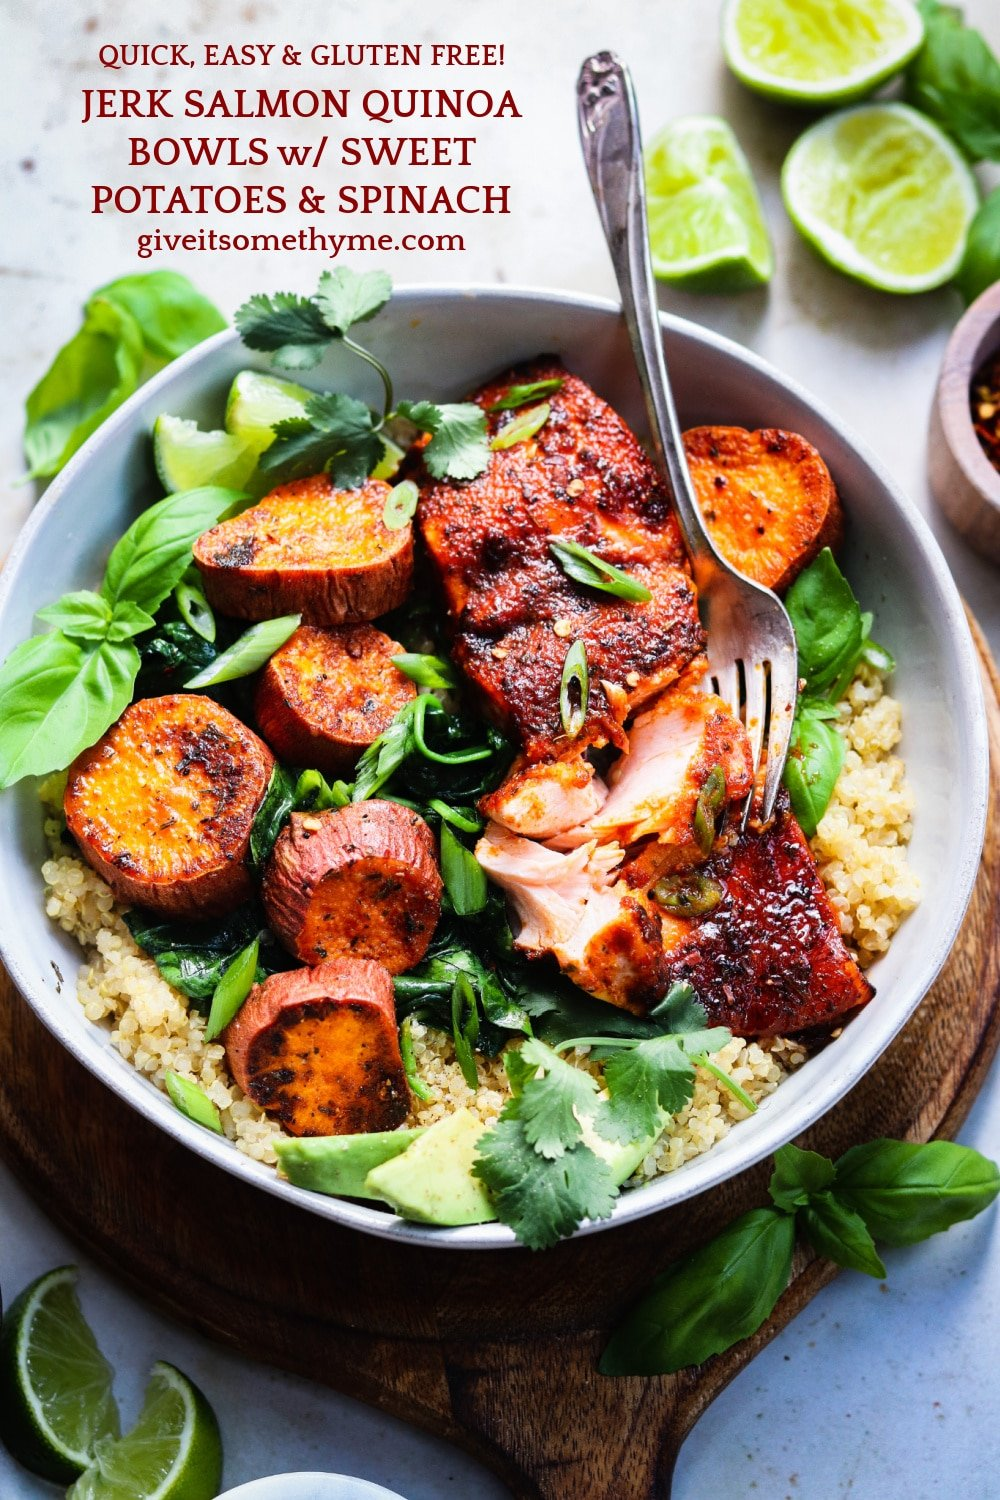 Jerk Salmon Quinoa Bowls w/ Sweet Potatoes & Spinach | giveitsomethyme.com – Fresh salmon fillets slathered in a jerk-spiced glaze along with roasted sweet potatoes and spinach over quinoa is a quick, easy and healthy dinner perfect for any night of the week! #salmonquinoabowl #salmondinnerideas #salmonrecipesbaked #healthydinnerrecipes #glutenfreedinnerseasy #giveitsomethyme